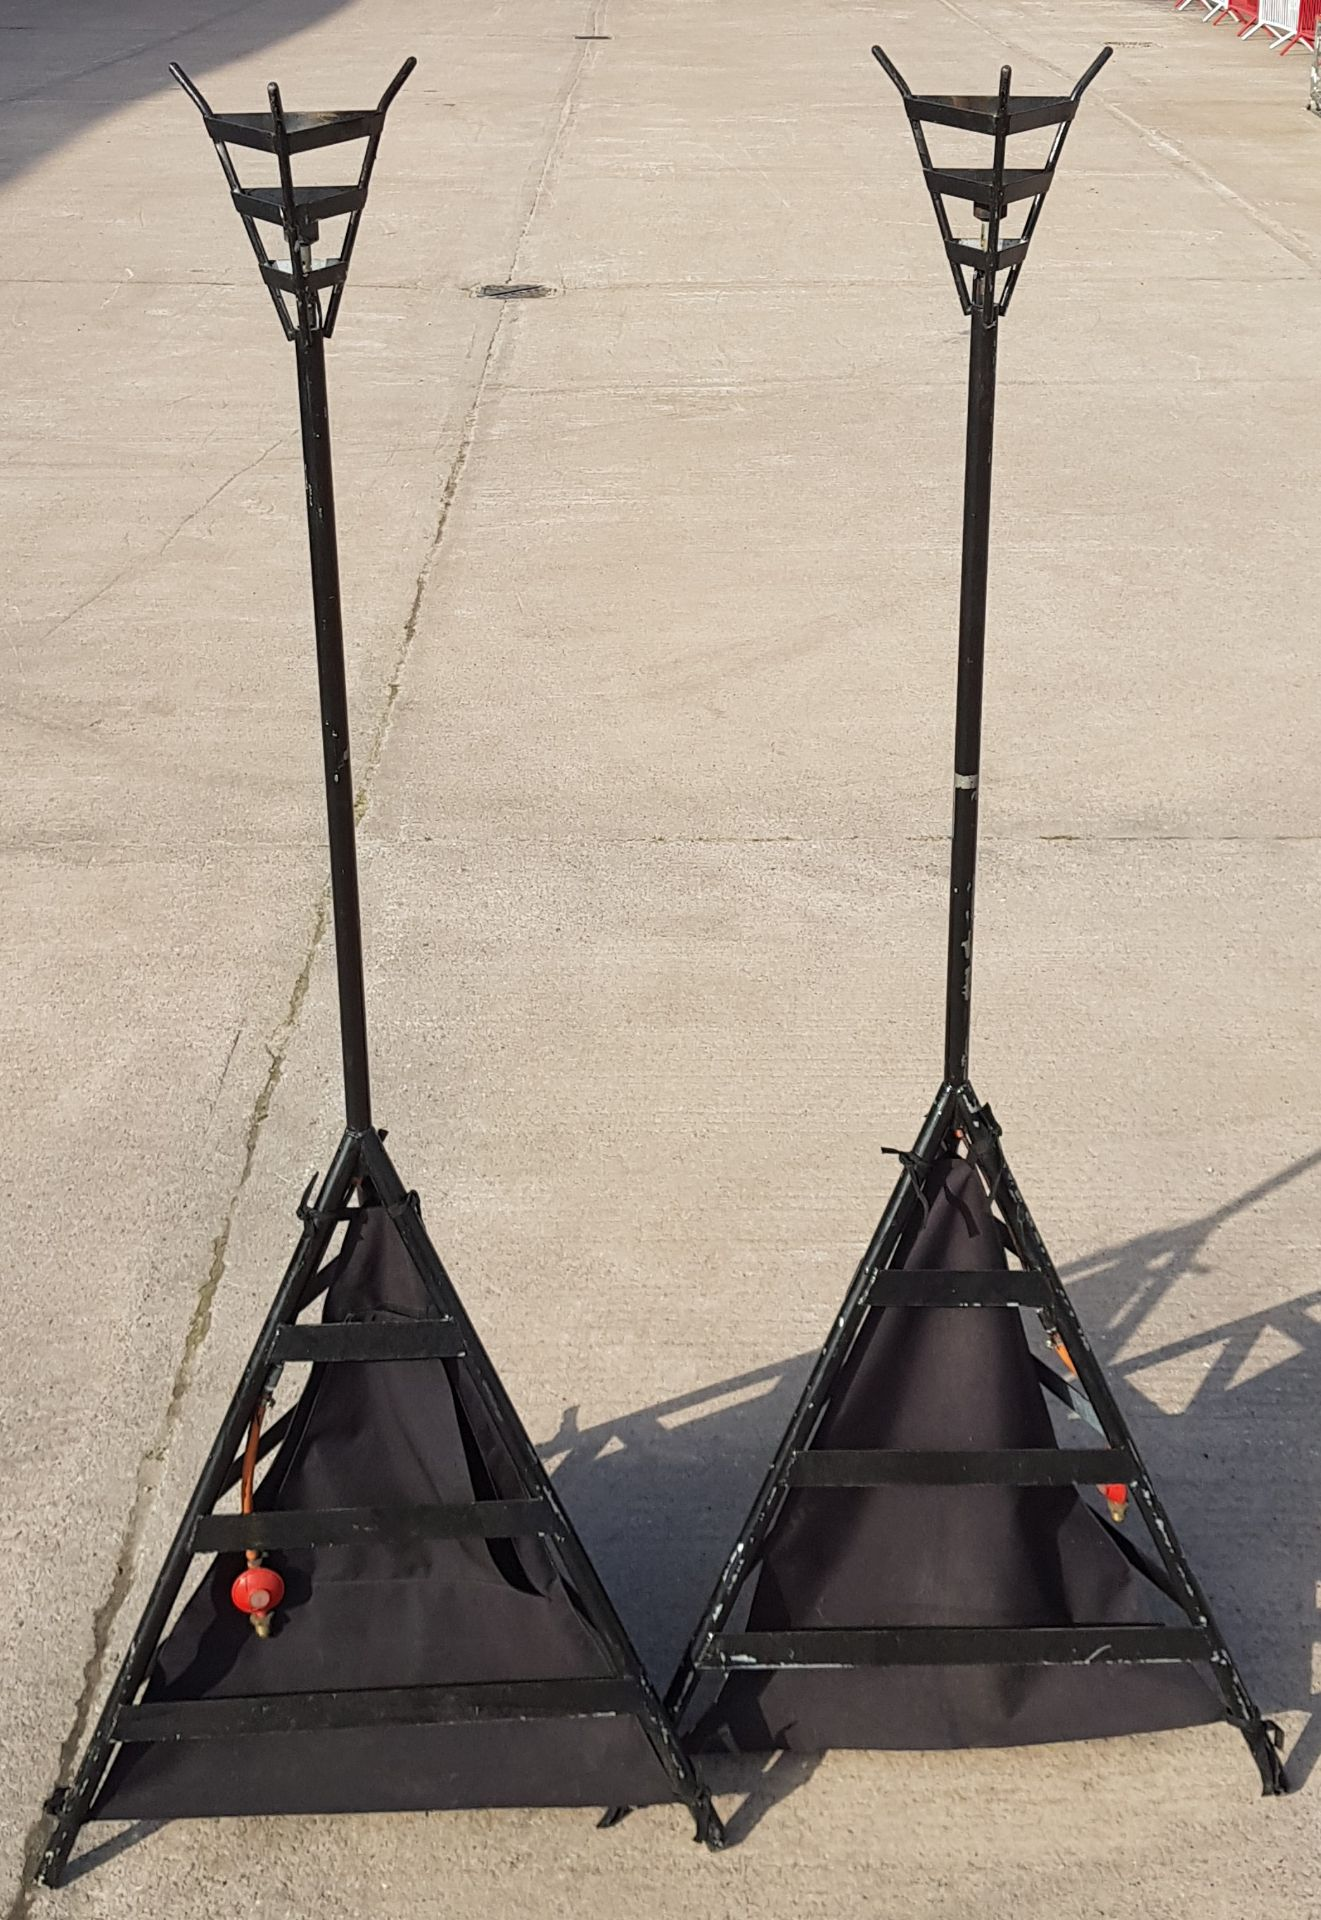 2 X 8FT GAS FLAMBEAUX (USED FOR EVENTS & PROMOTIONS) - BLACK FINISH - EX HIRE DISPLAY (IE. MAY